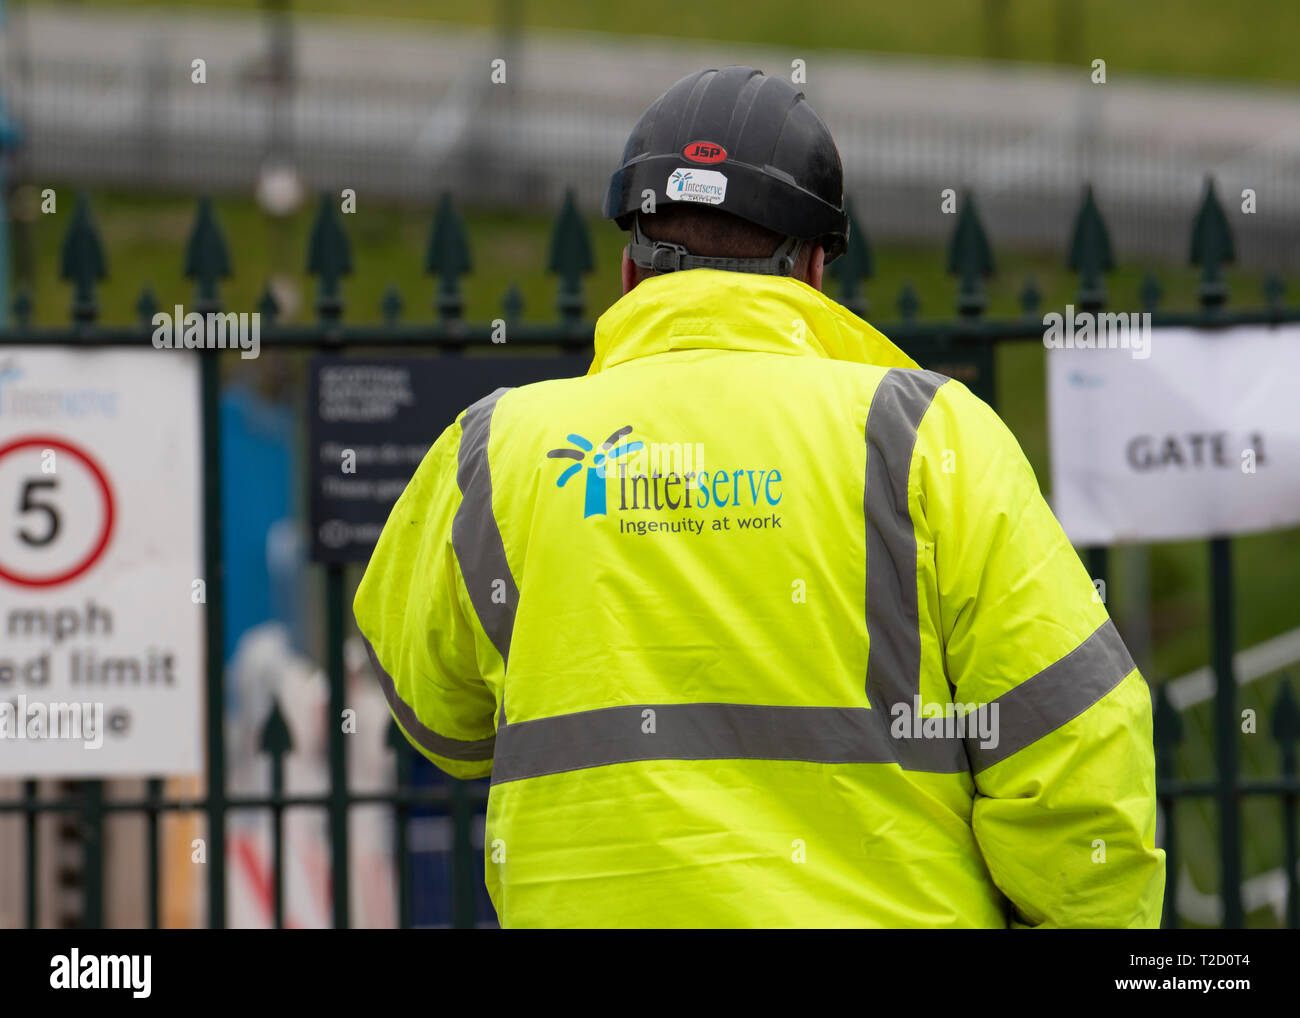 Edinburgh, Scotland, UK. 1 April, 2019. General views of Interserve construction site at the Royal Scottish Academy and Scottish National Gallery art  - Stock Image